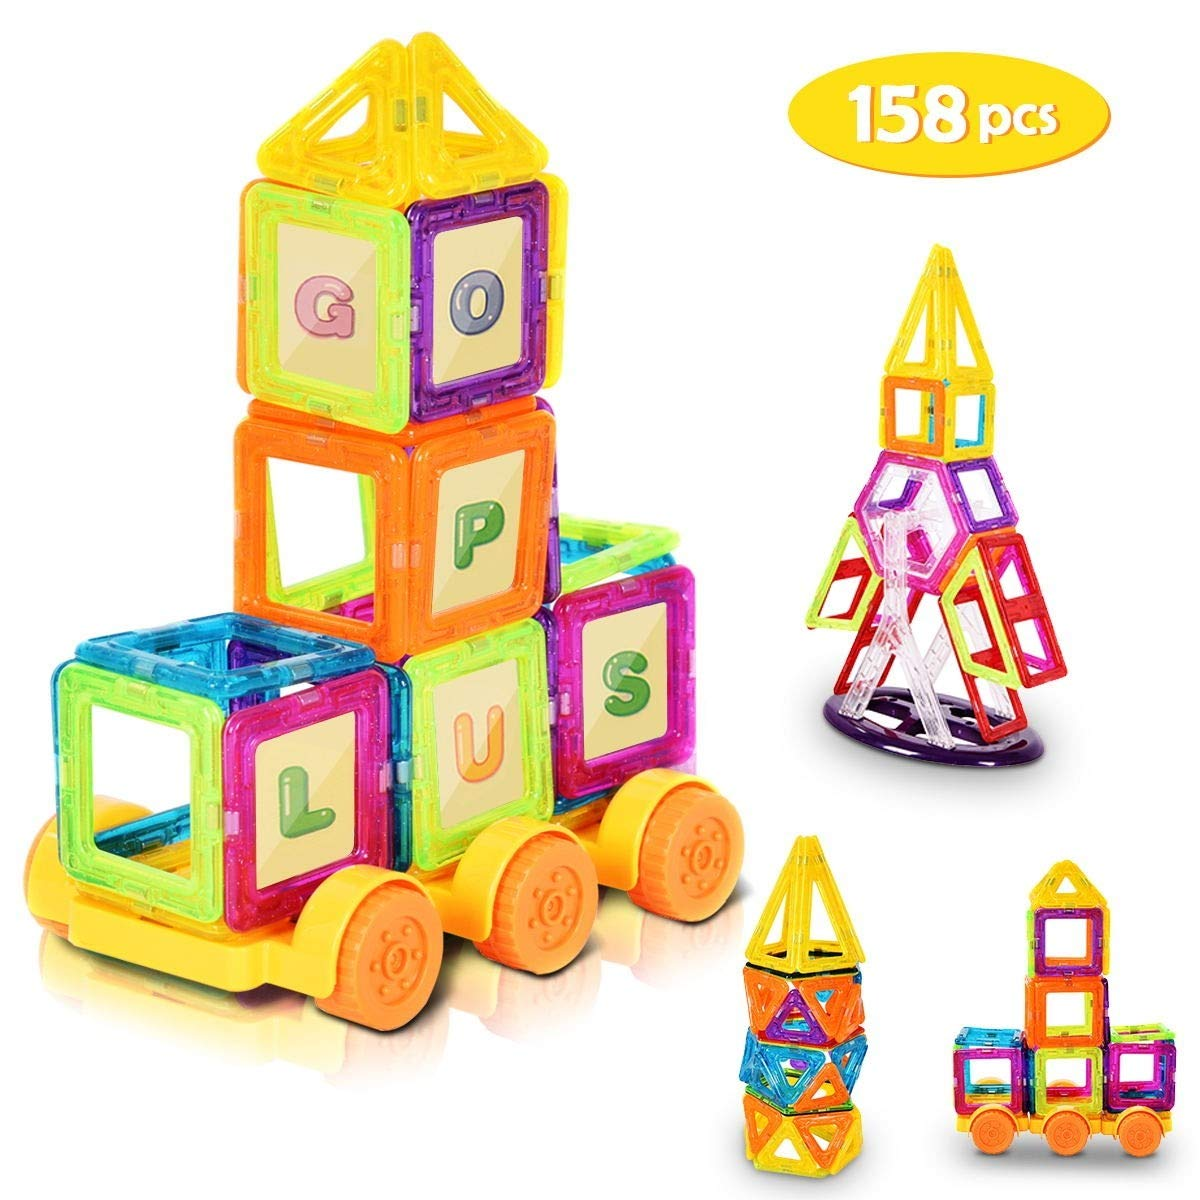 LordBee Attractive Colorful 158 pcs Magical Magnetic Construction Building Blocks Non-Toxic Harmless Plastic Magnet by LordBee (Image #1)